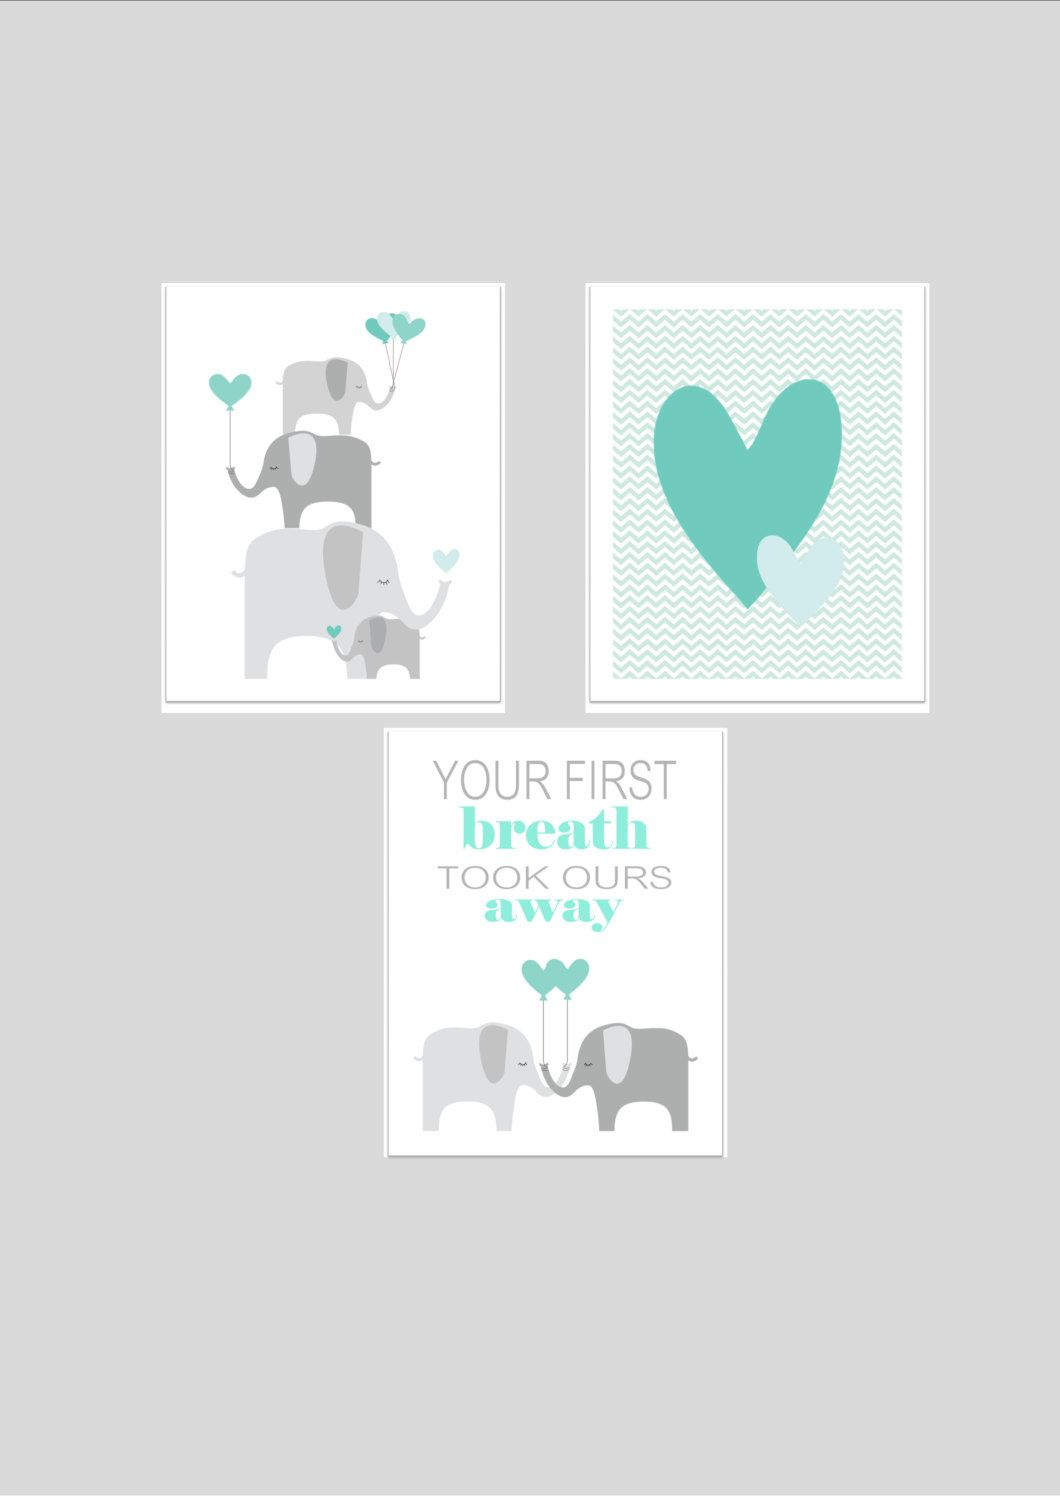 Elephant nursery wall art print mom baby dad by rizzleandrugee - Blue Gray Baby Boy Nursery Art Elephant Nursery Wall Decor No More Landon James Pinterest Boy Nursery Art Nursery Wall Decor And Nursery Art